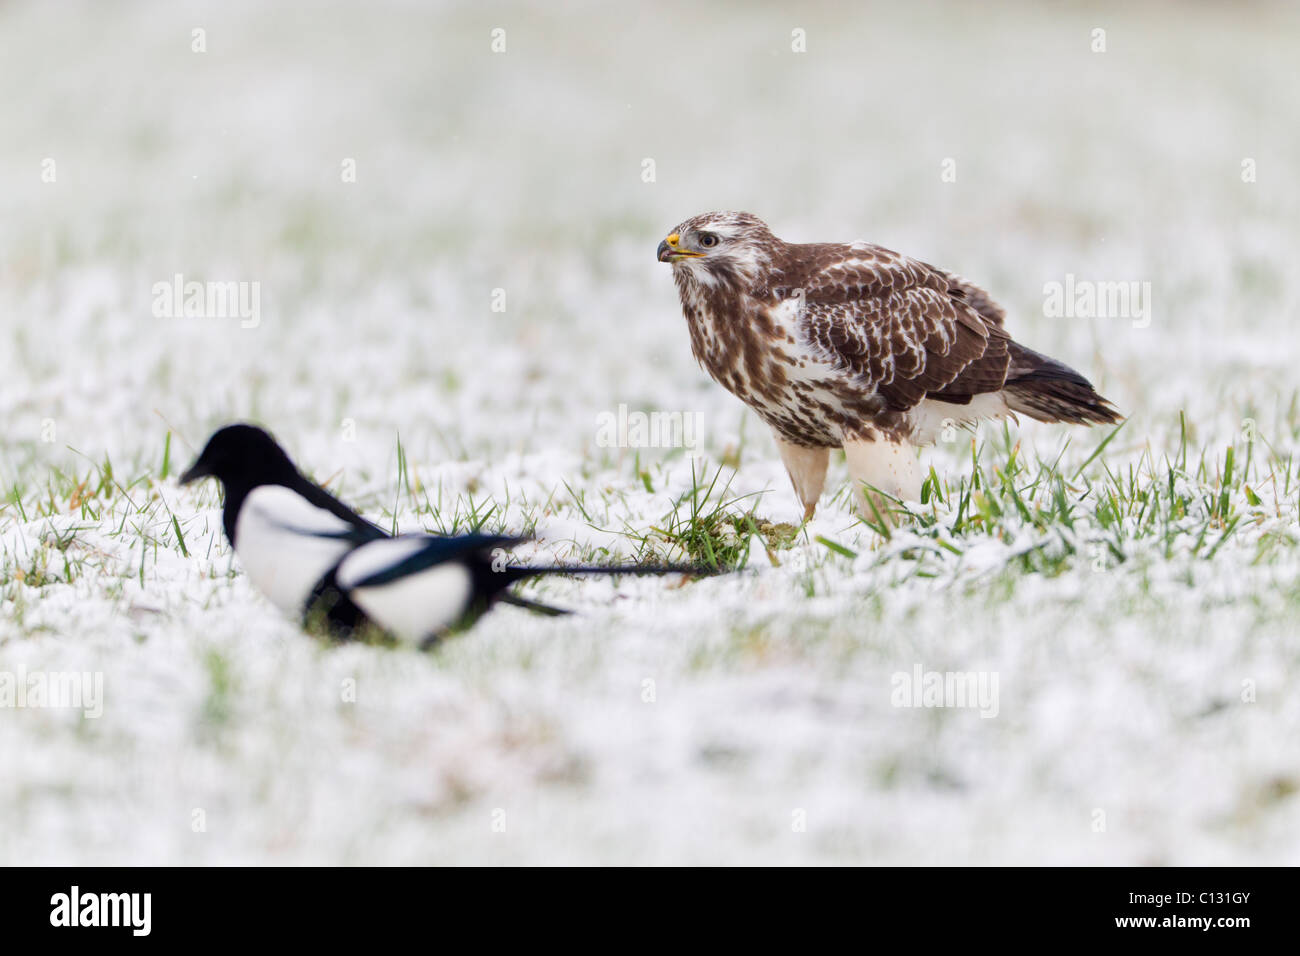 Common Buzzard (Buteo buteo), and Common Magpies (Pica pica), feeding on carrion in snow - Stock Image